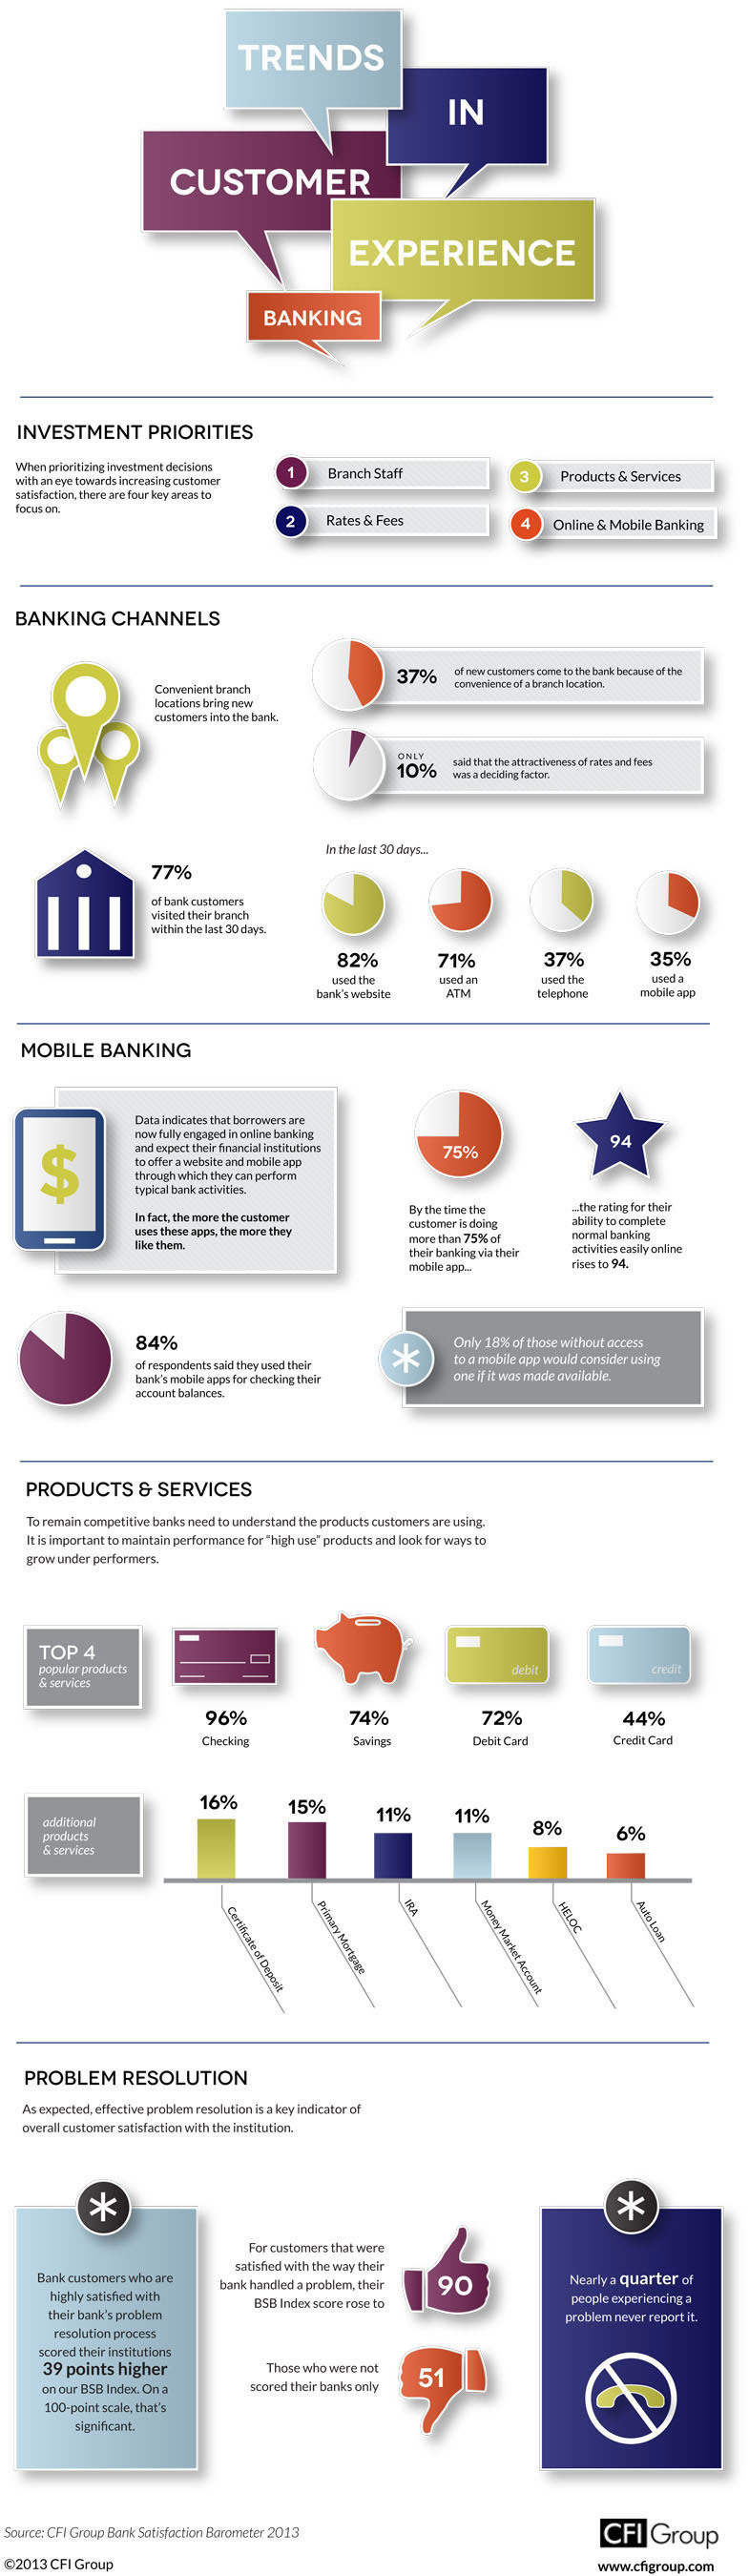 Trends in Customer Experience - Banking. Source: CFI Group Bank Satisfaction Barometer 2013.  (PRNewsFoto/CFI Group)